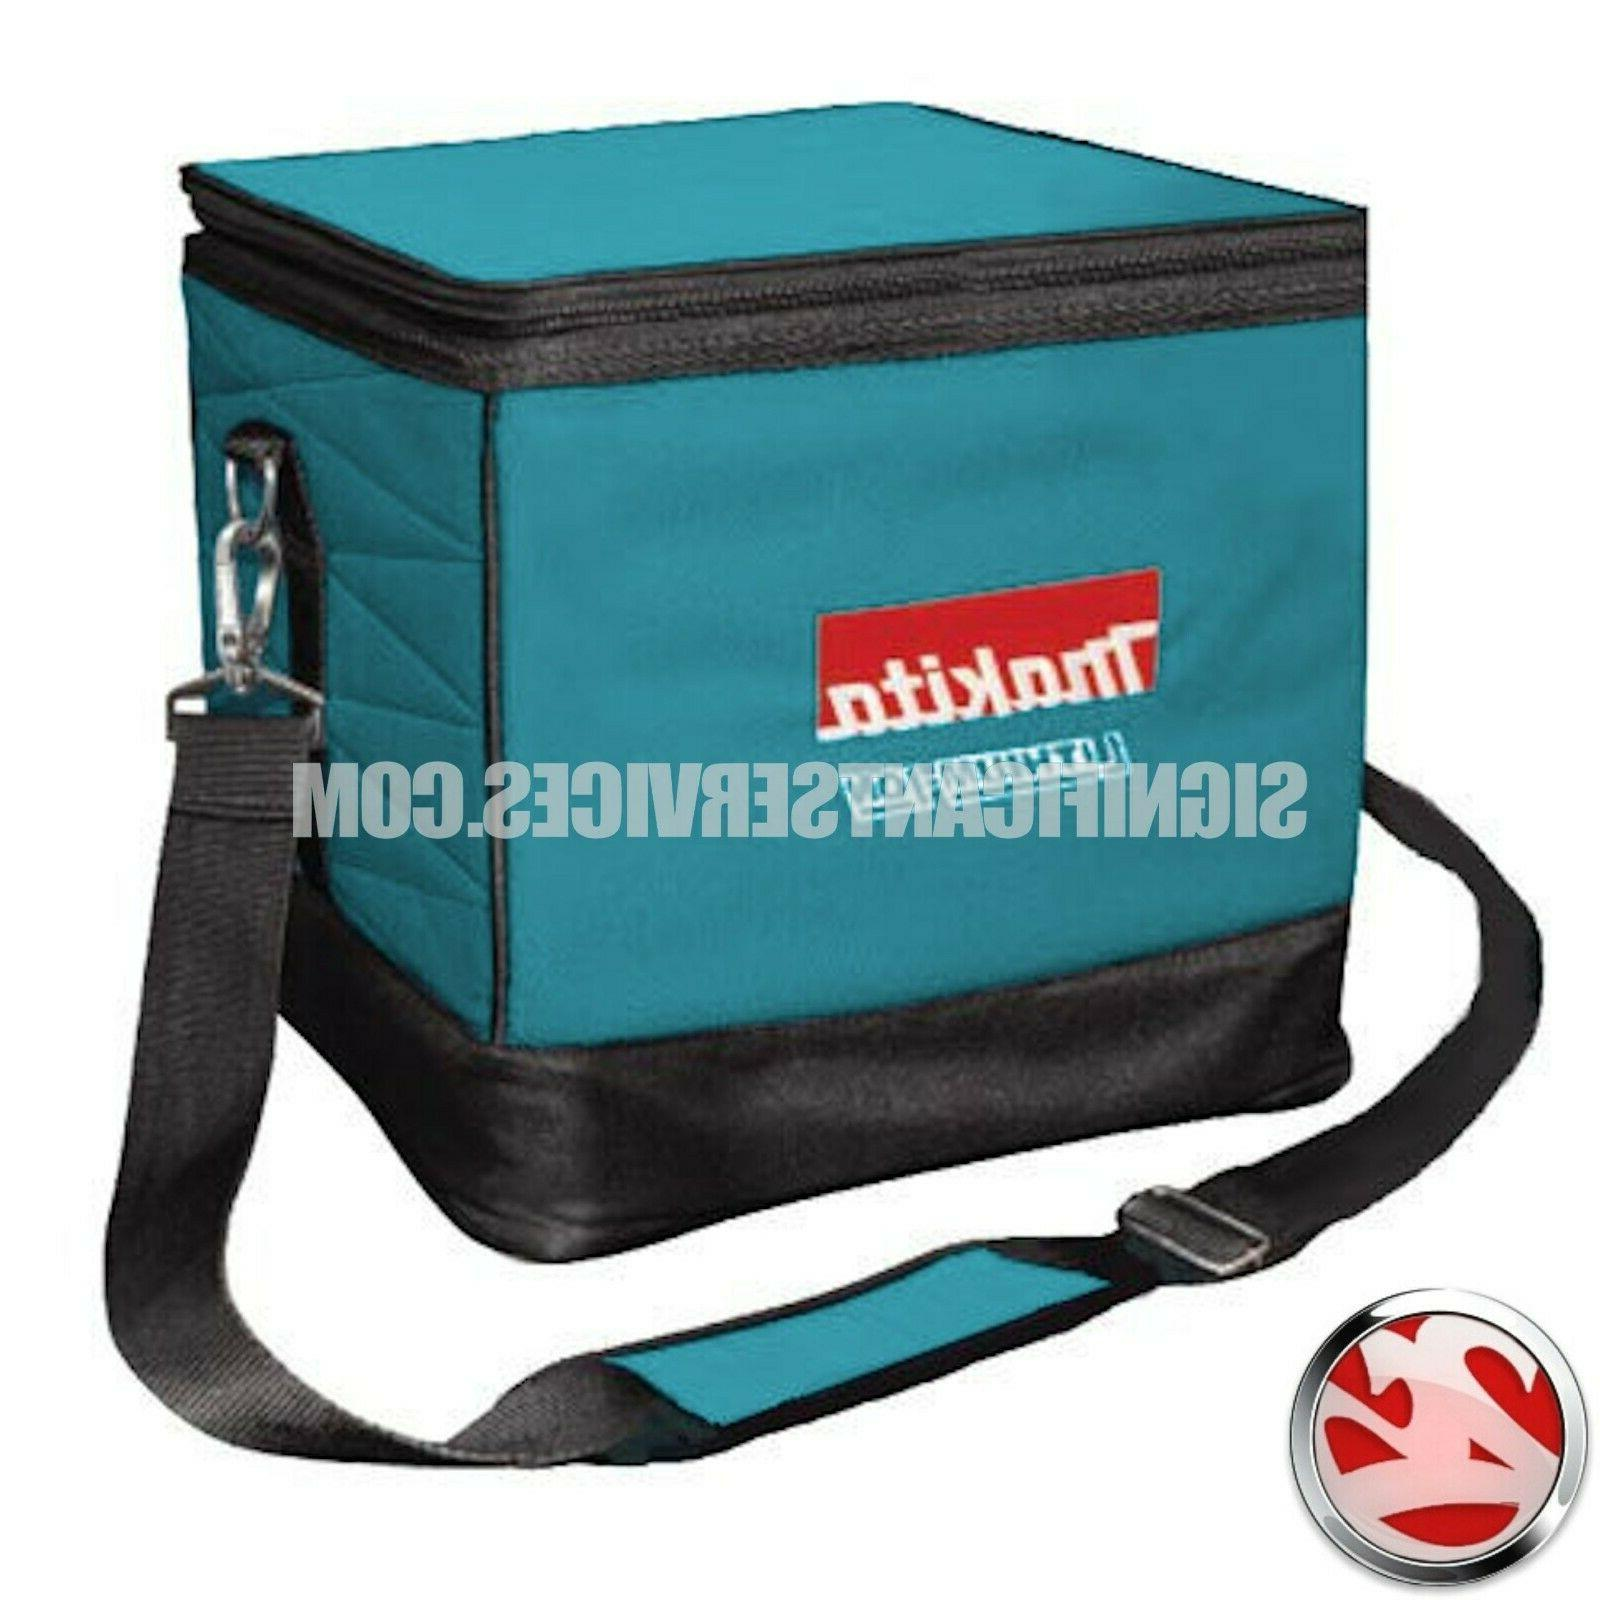 18v lxt heavy duty contractor drill case